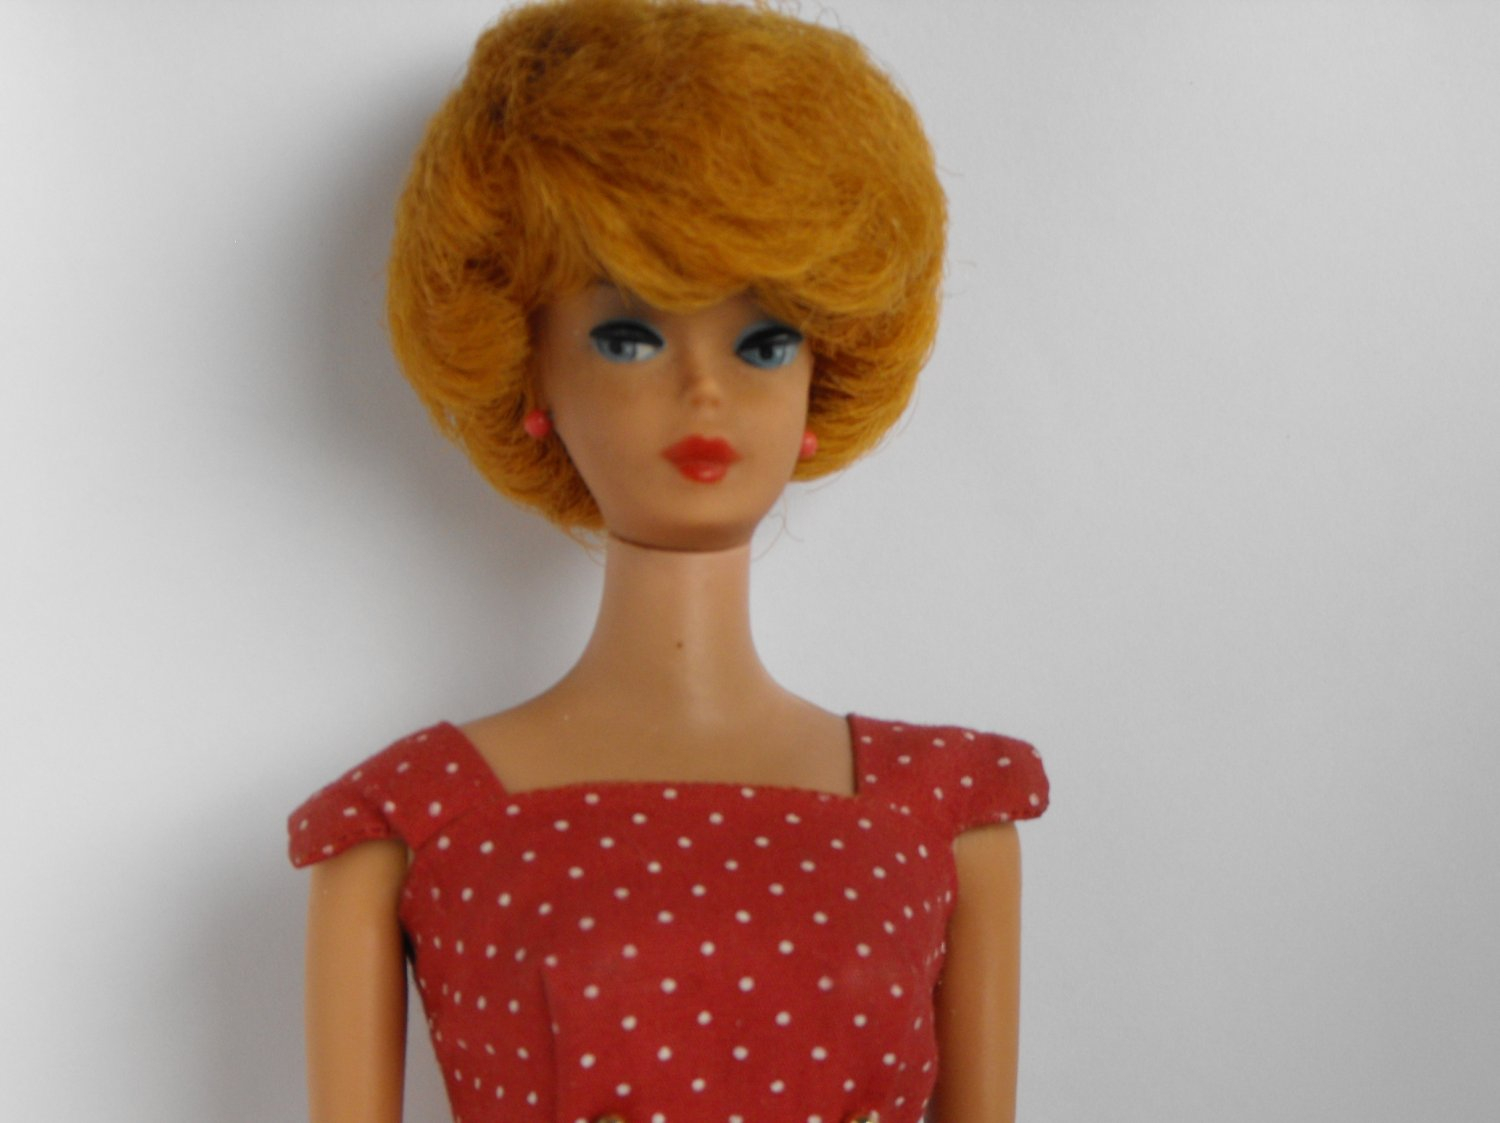 Bubble Cut Barbie Titian / Ash Blonde  Vintage 1961